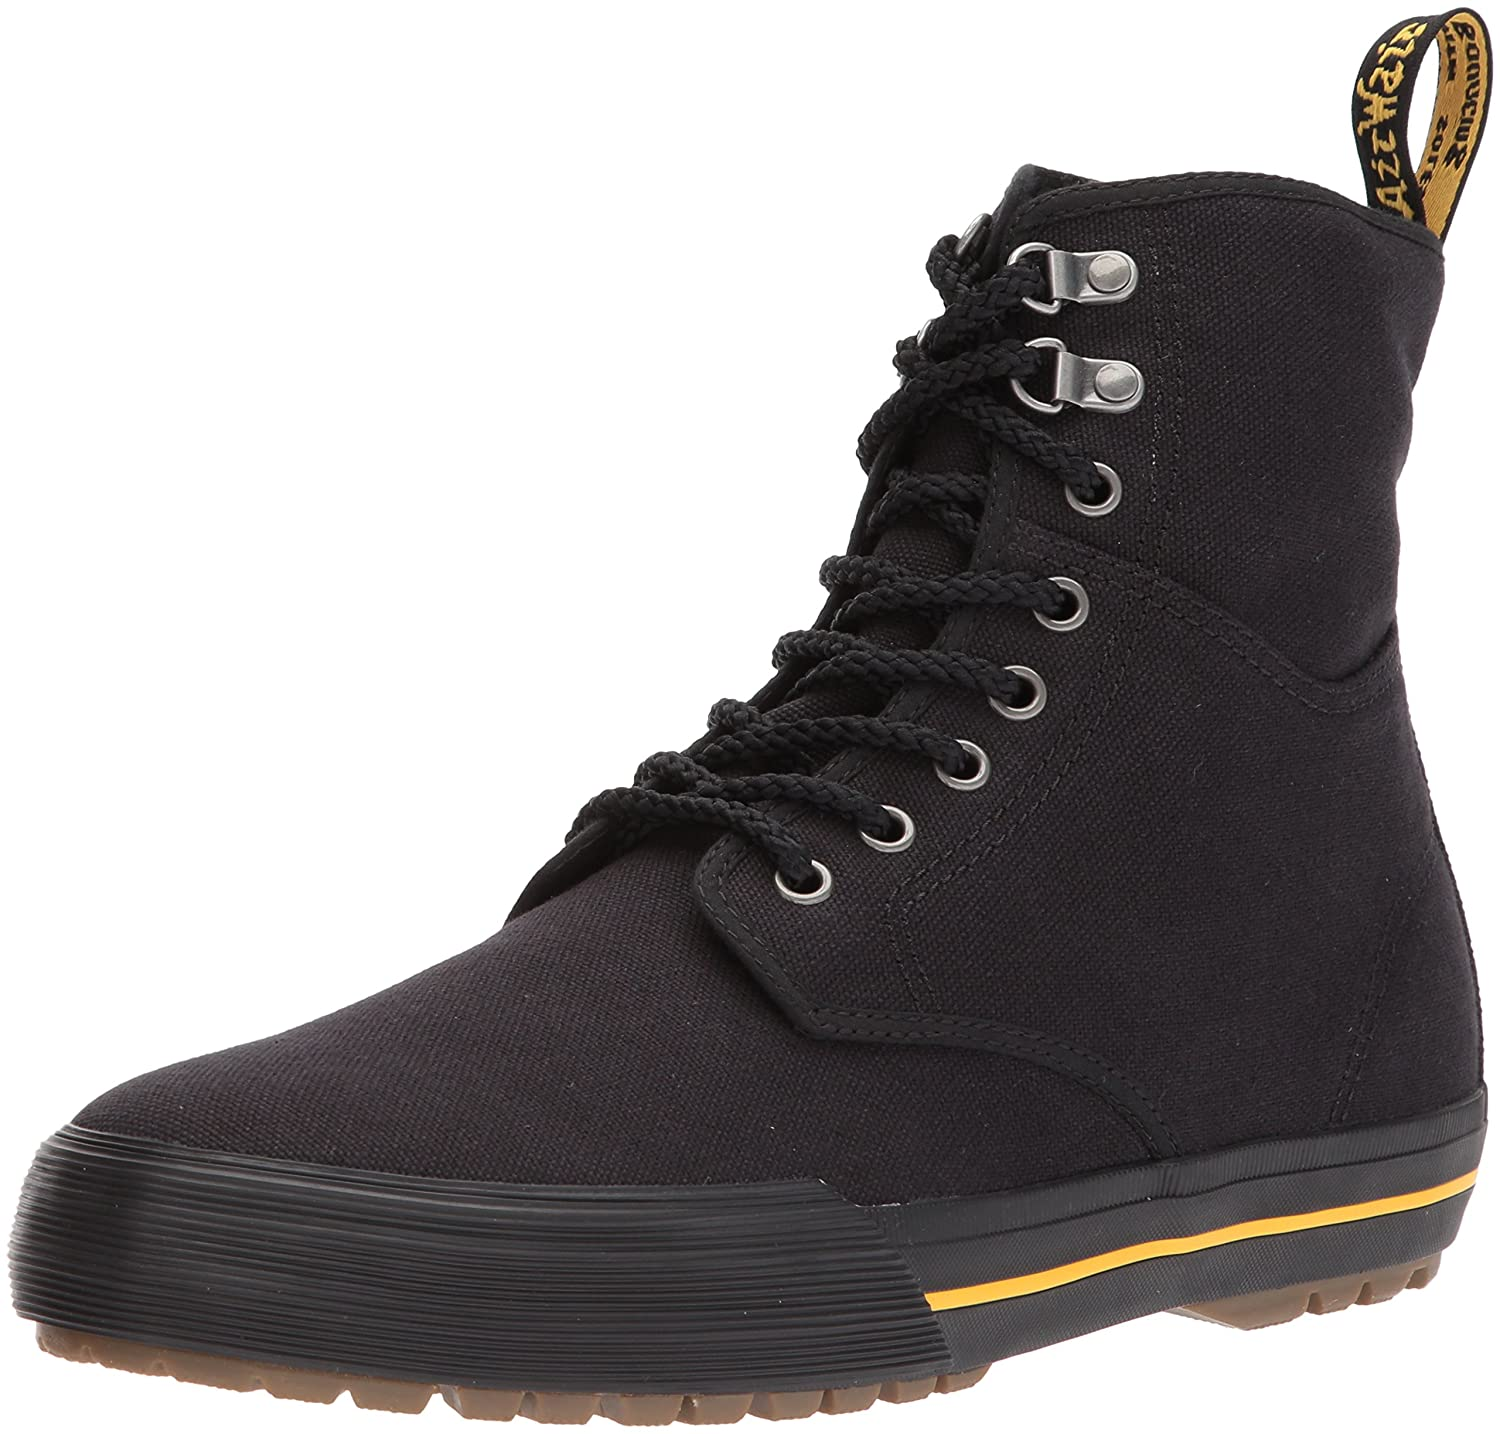 Dr. Martens Winsted Black Canvas Fashion Boot B01MY3EC1G 12 Medium UK (US Men's 13 US)|Black